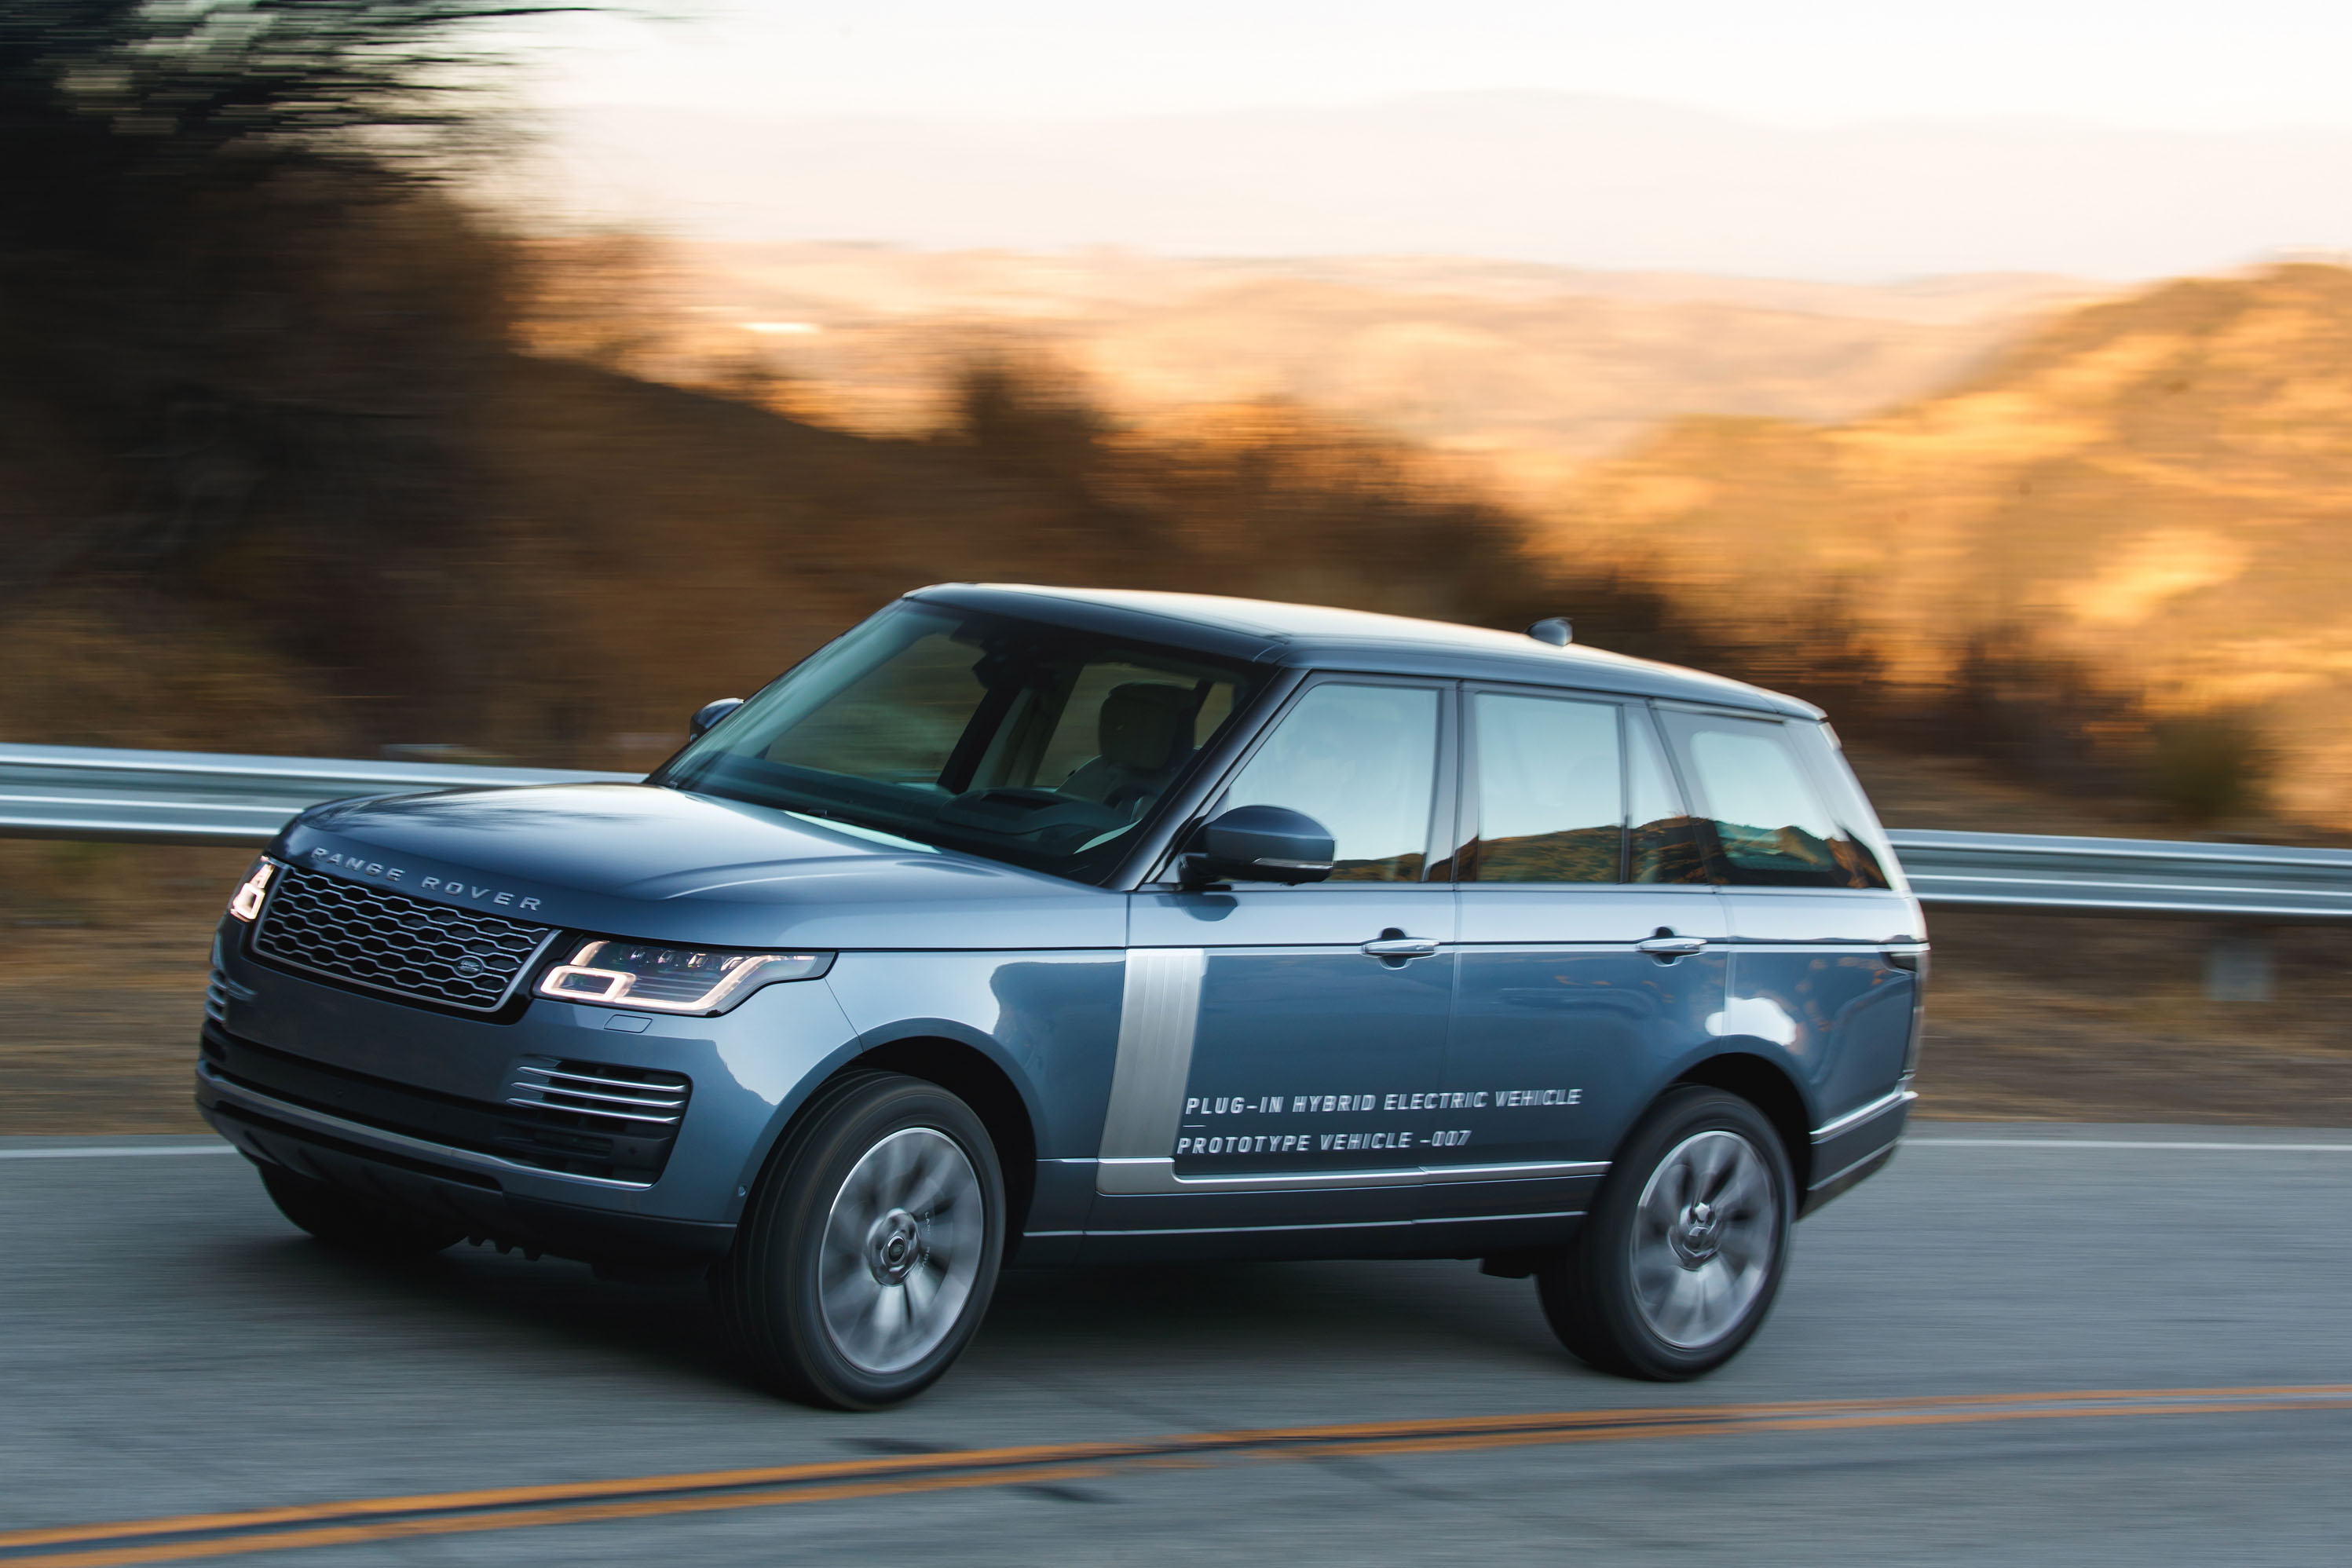 Land Rover Range Rover News Breaking News s & Videos